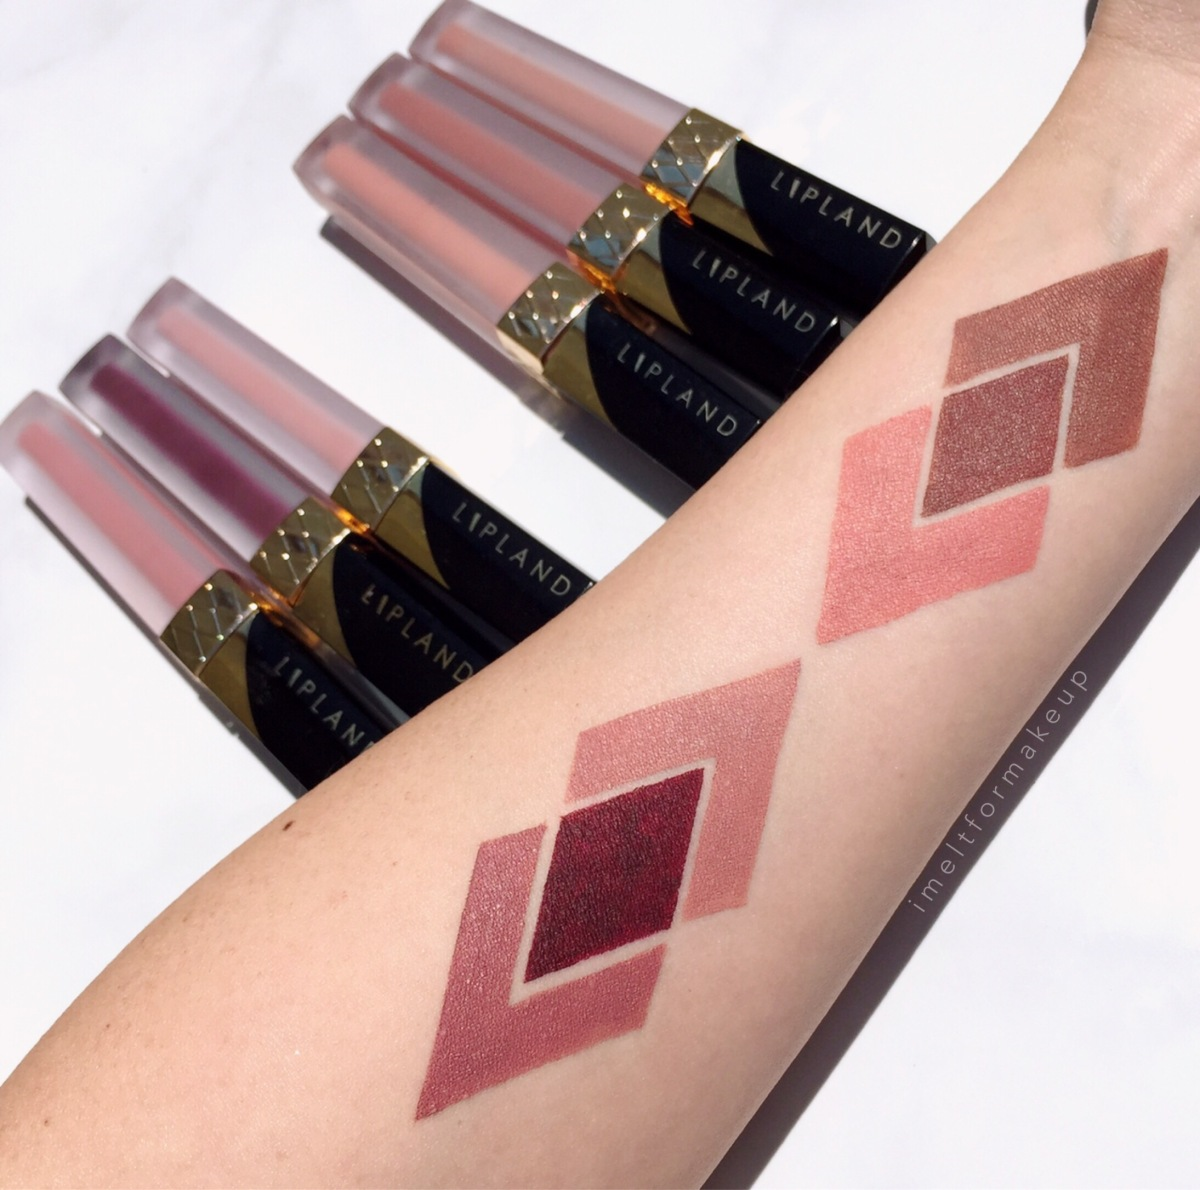 Lipland Cosmetics Liquid Lipstick Review & Swatches